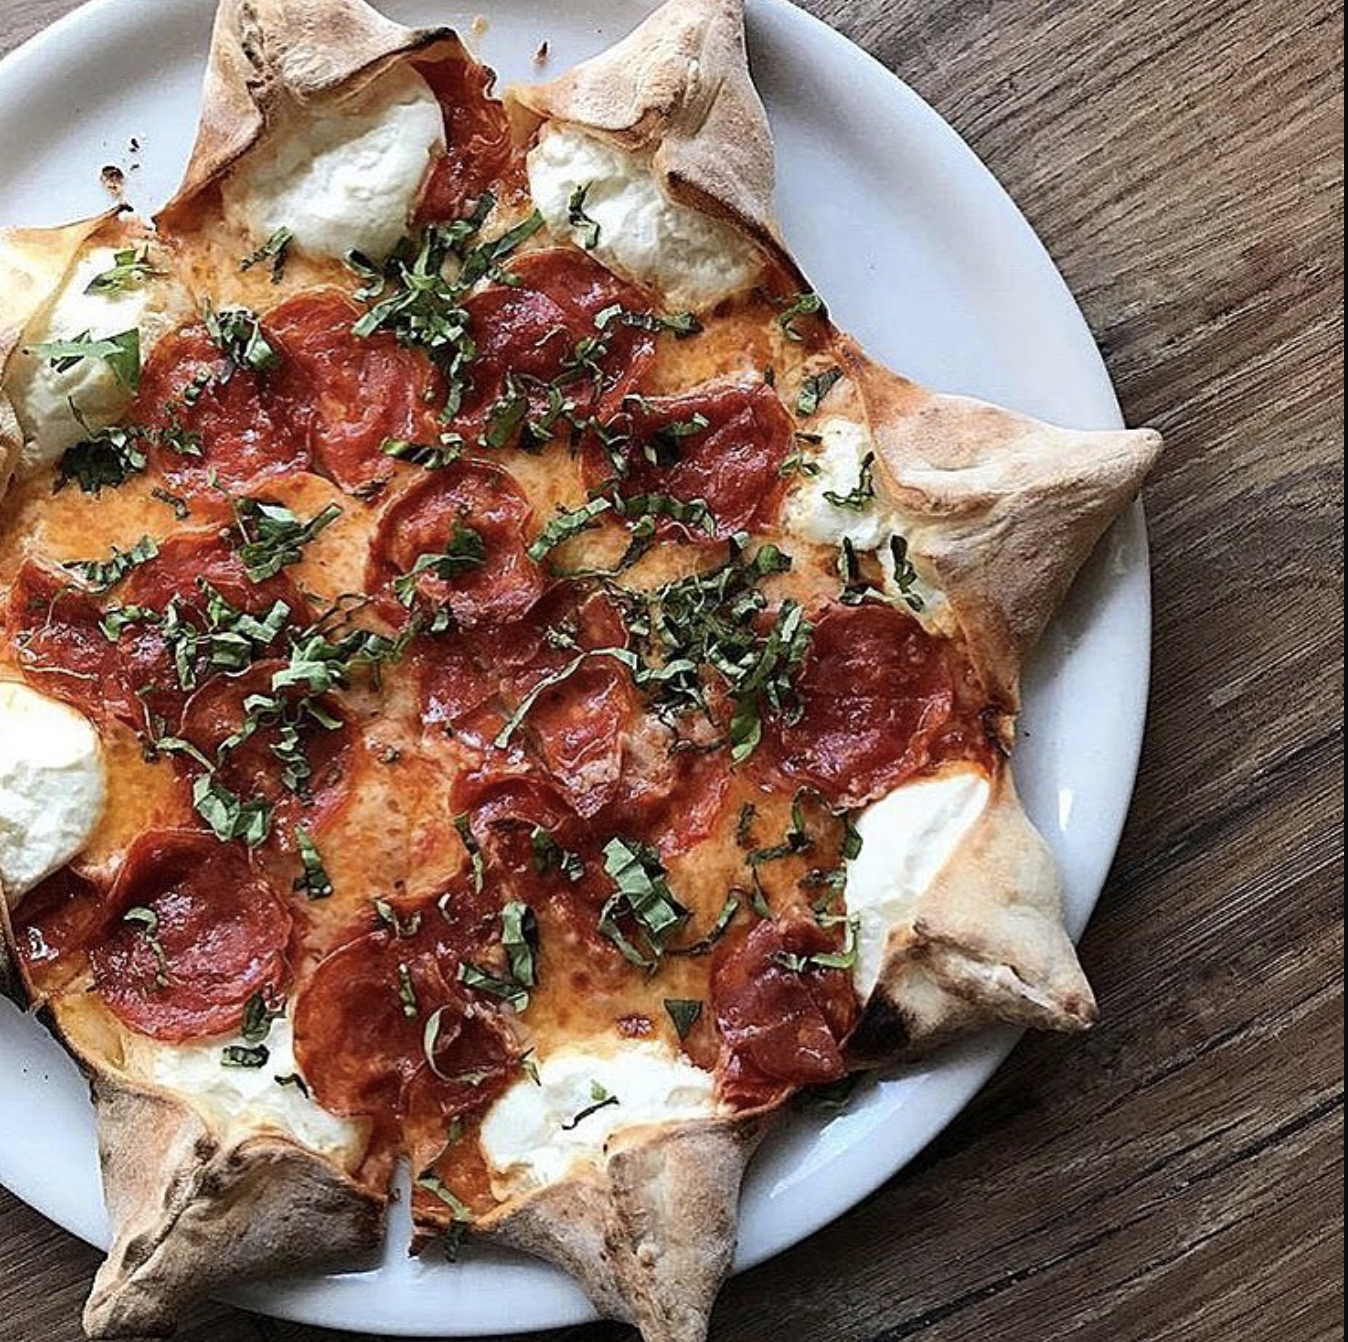 the 5 best pizza spots in Miami